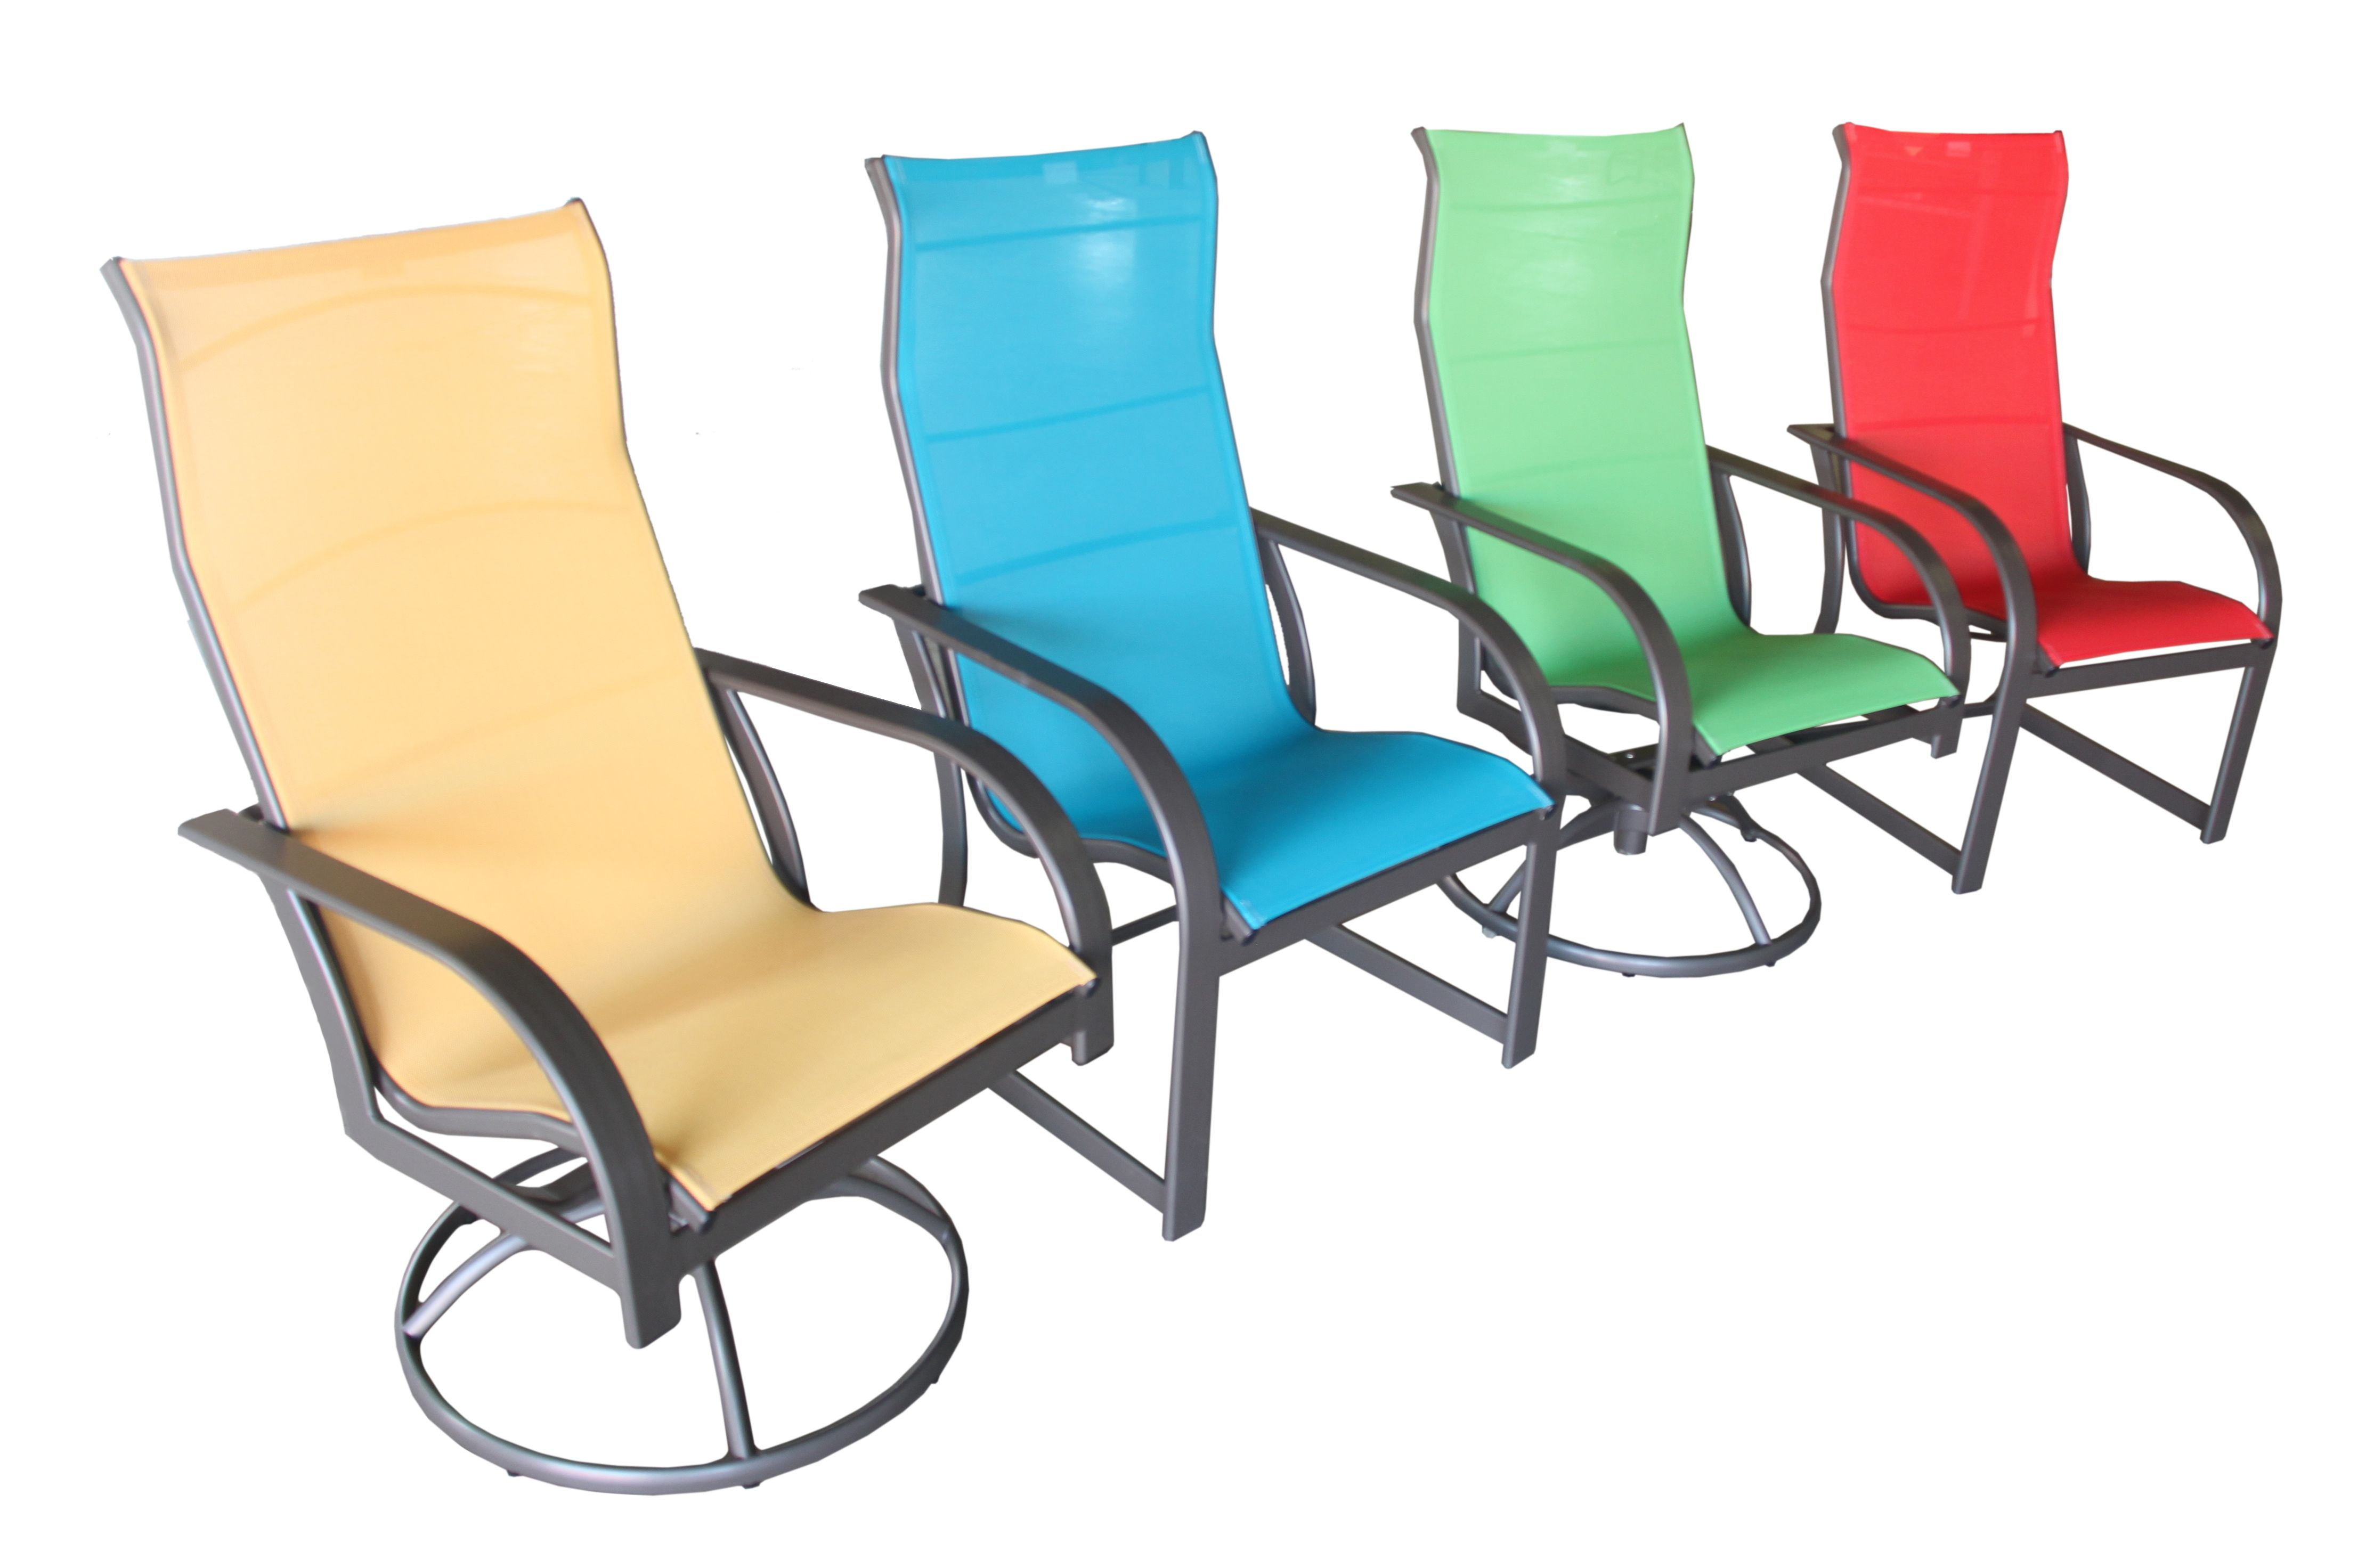 Patio Chair Replacement Slings Chair Care Patio Makes Single Replacement Slings For Most Better